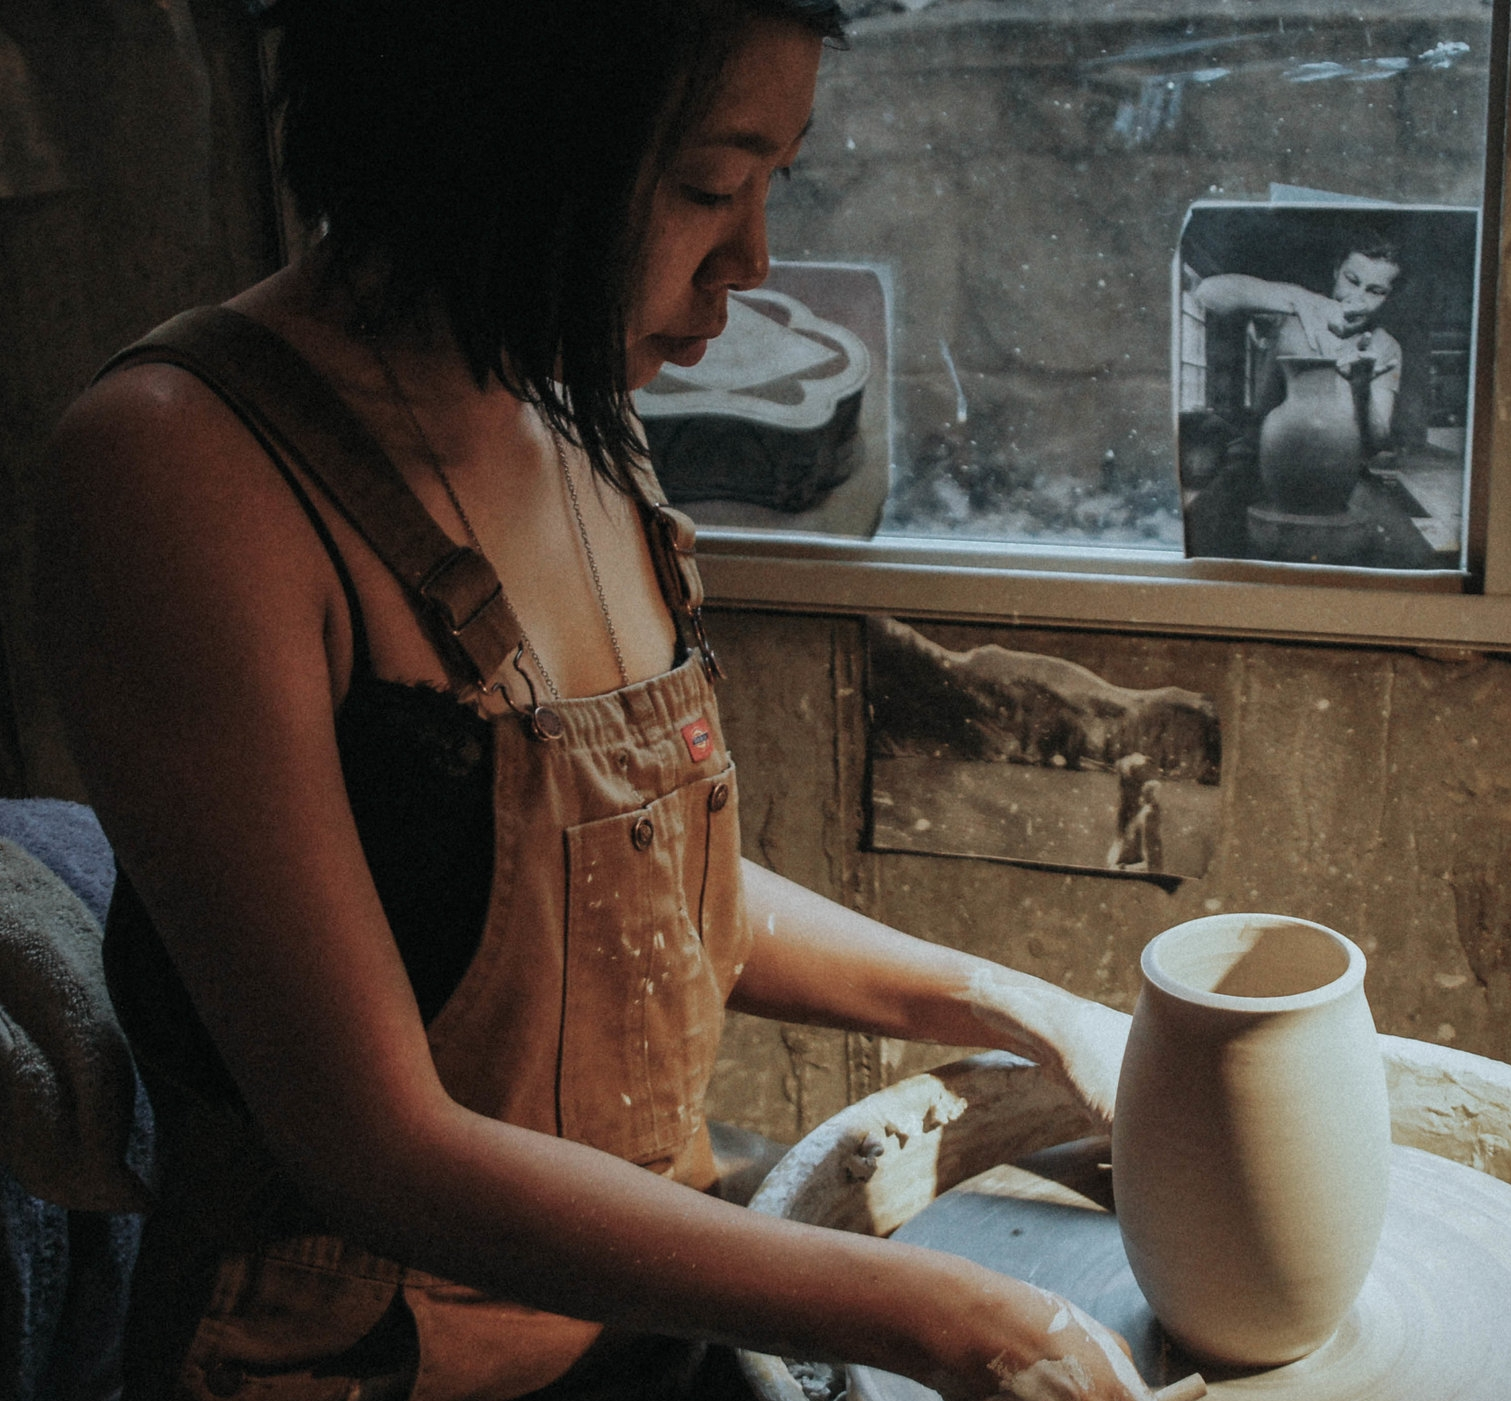 Miche Wang - Miche Wang started getting muddy in 2010—and hasn't stopped working with clay since. When she's not in the studio, Miche enjoys skiing, hiking, whitewater rafting, and is occasionally caught foraging wild edibles. She recently relocated to Whitefish, MT in pursuit of colder winters and a job opportunity where she can excel in the world of production pottery.Website